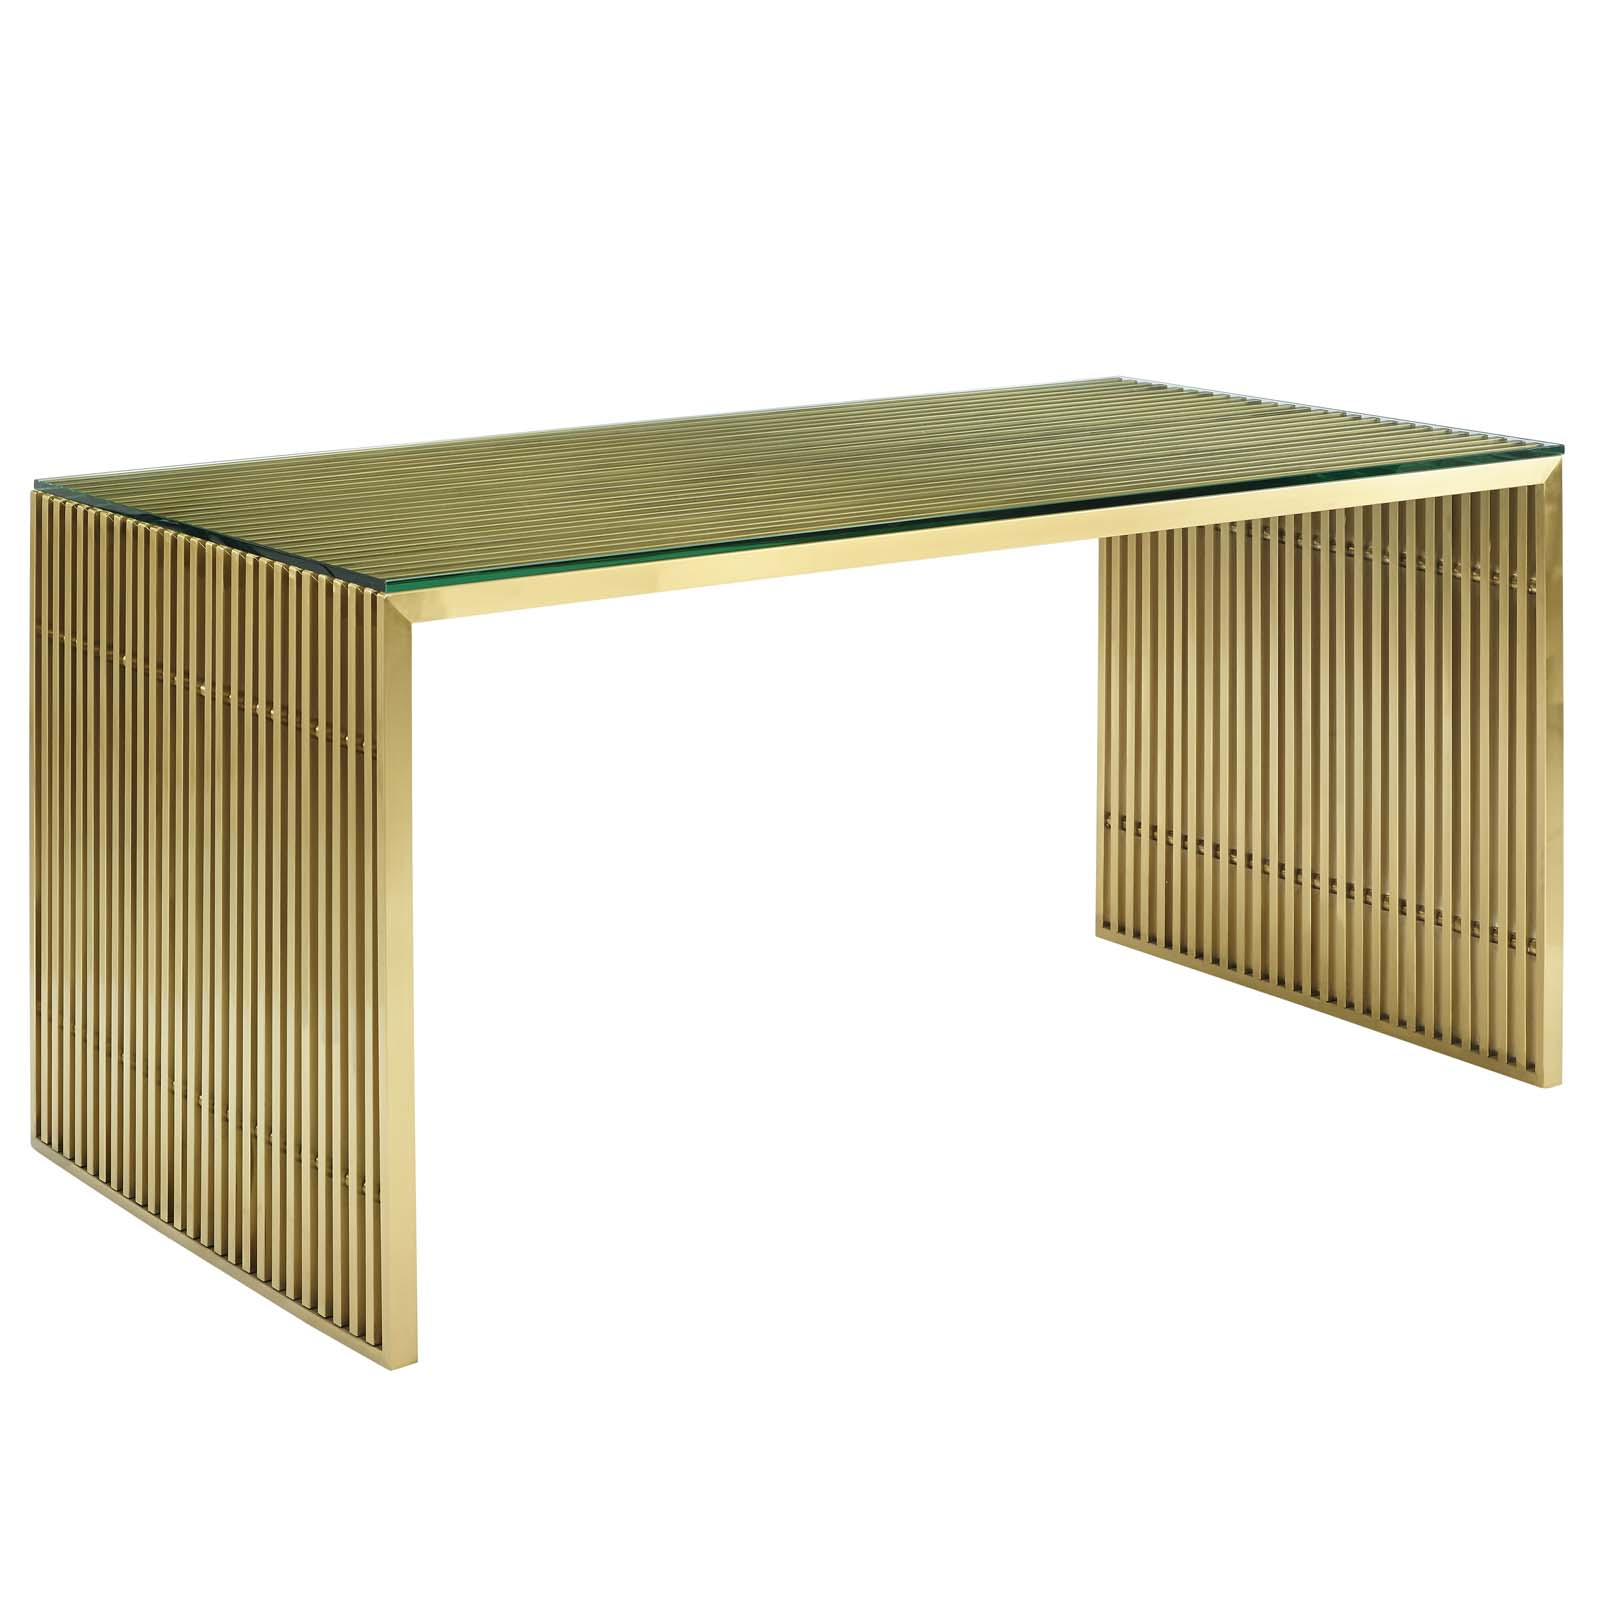 Details About Modern Deco Lounge Dining Table, Metal Steel Stainless Steel Glass, Gold, 14242 For 2018 Steel And Glass Rectangle Dining Tables (View 9 of 30)